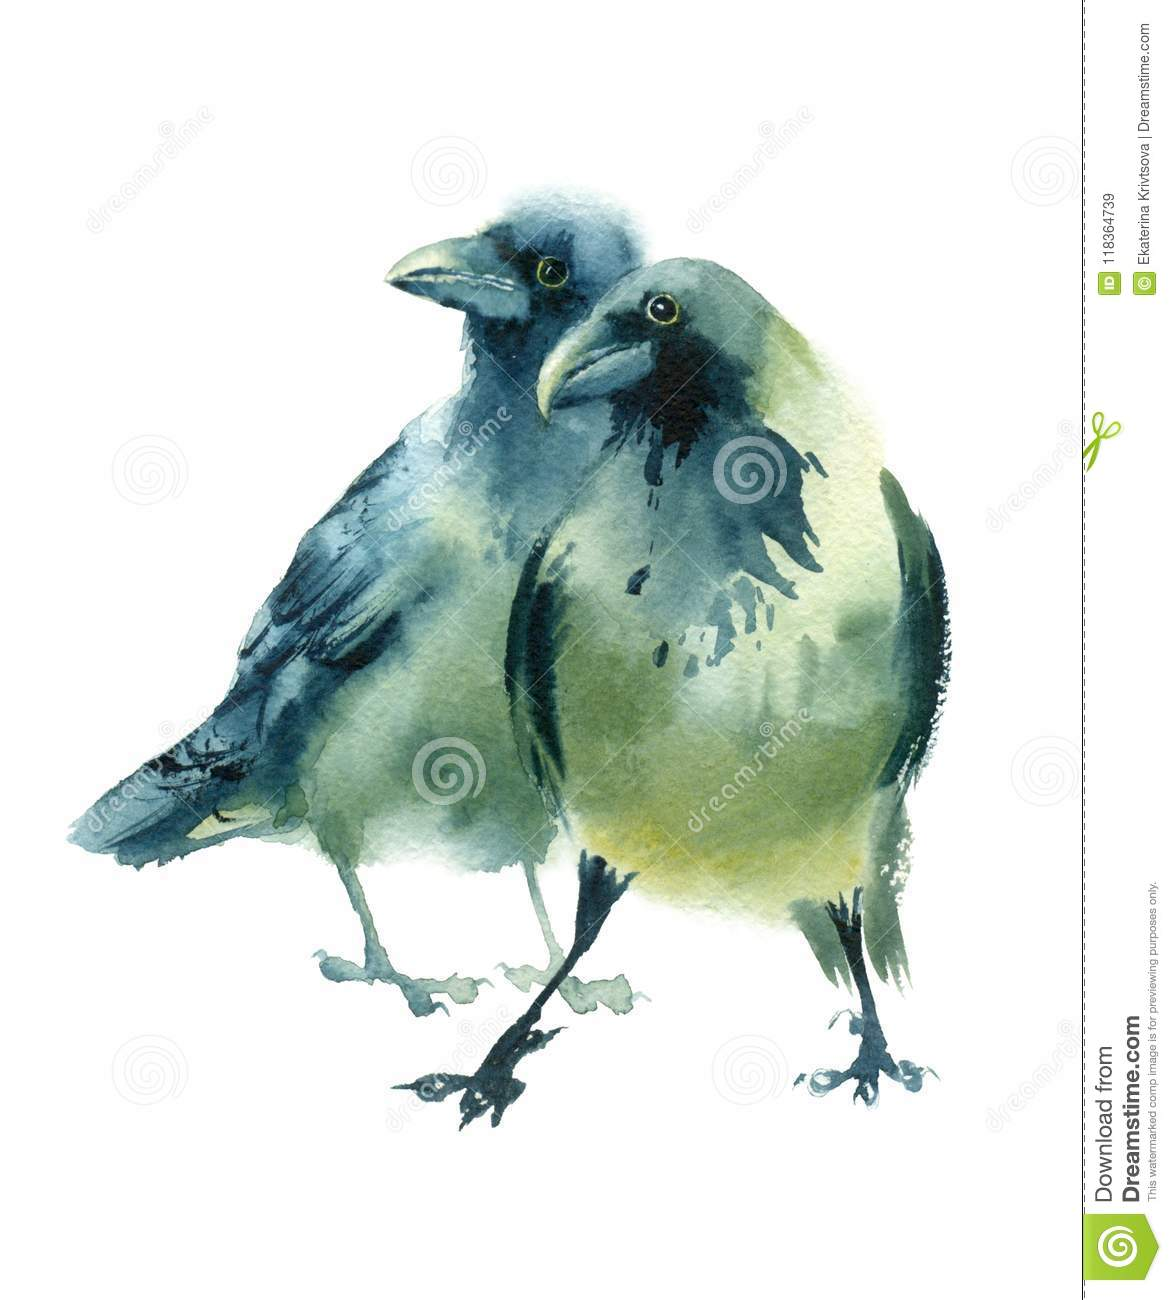 Watercolor sketch of black gray birds stock illustration